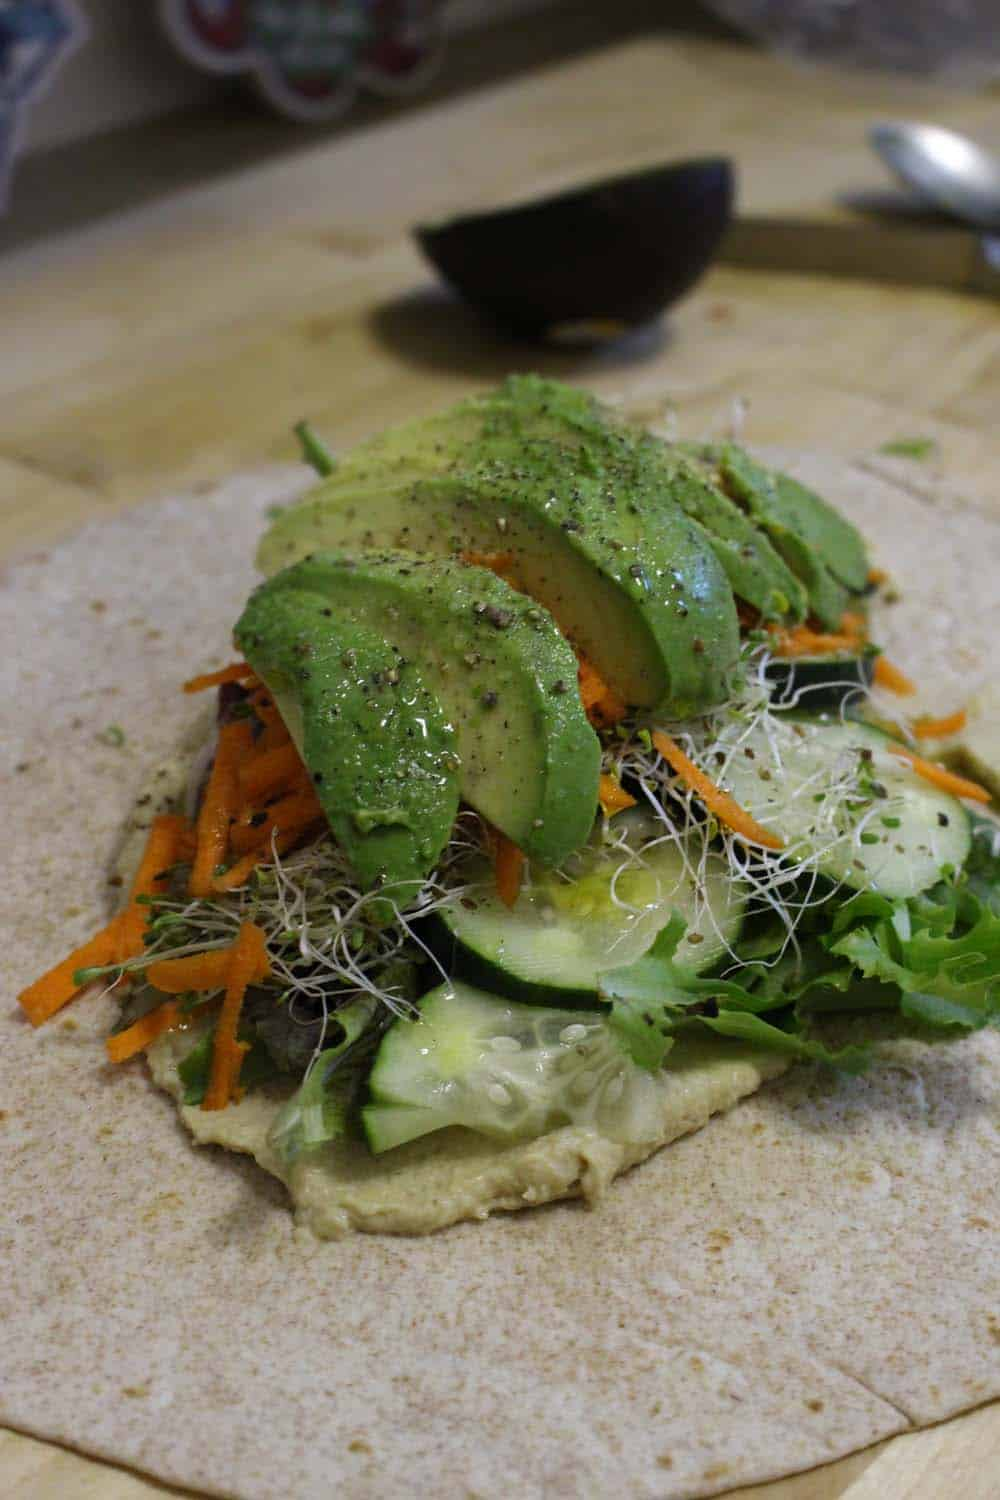 A fresh versatile veggie wrap with hummus, avocado, and a simple dressing added to make extra it satisfying and delicious! Super quick and easy, and VERY healthy.